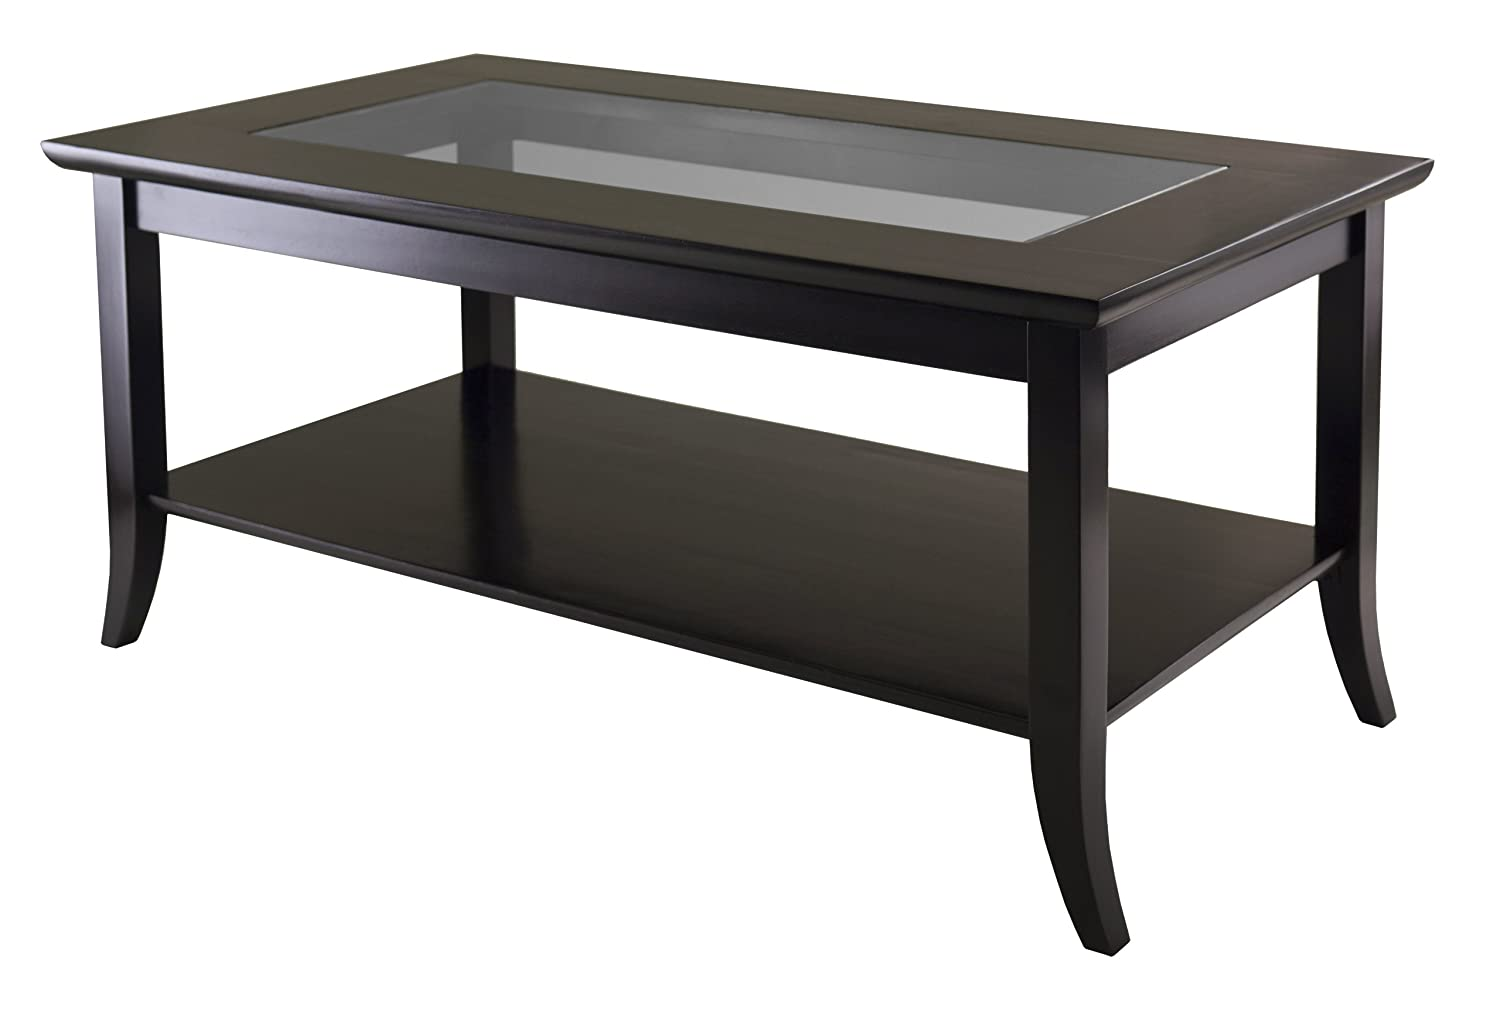 Winsome Wood Genoa Rectanuglar Coffee Table with Glass Top and Shelf 92437